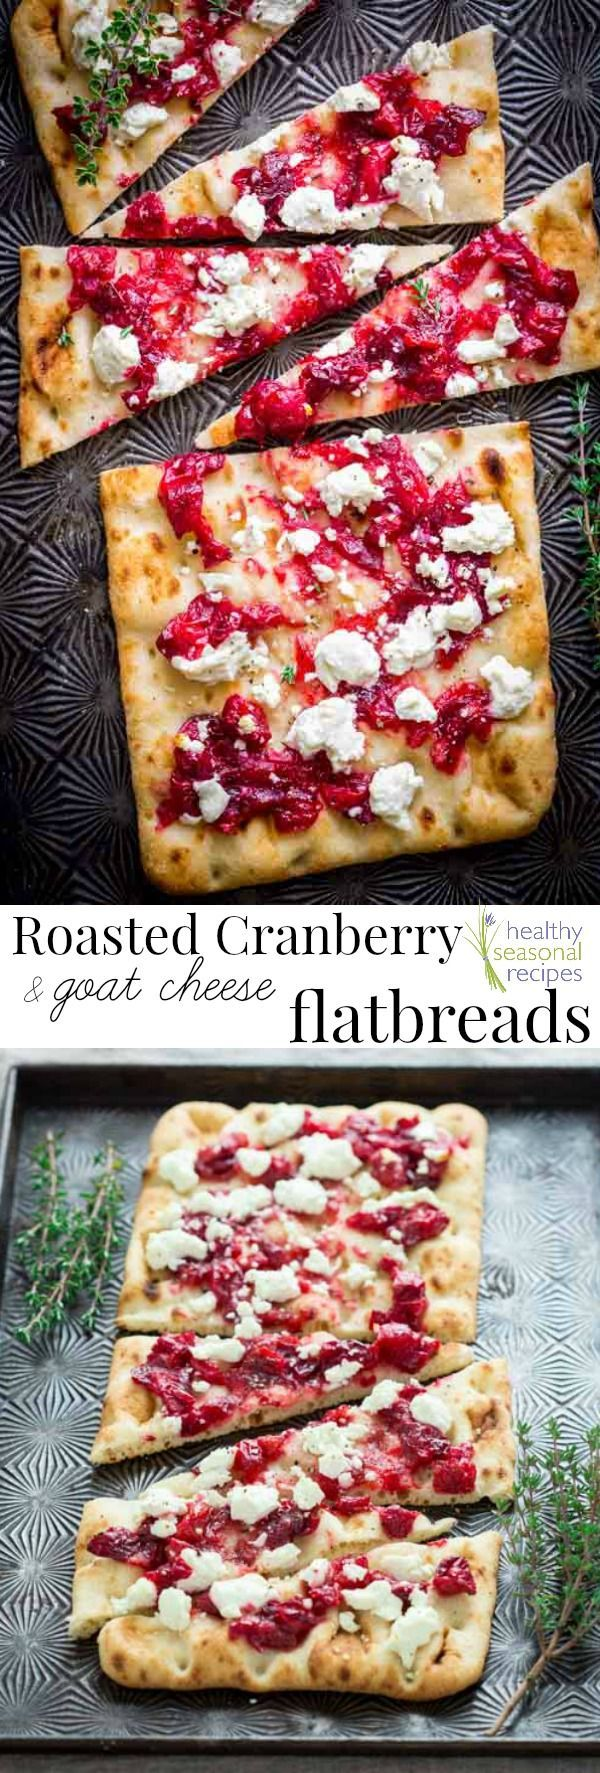 1 1/2 cup Cranberries, fresh. 1 tbsp Shallot. 1/2 tsp Thyme, dry. 3 tbsp Maple syrup, dark pure. 1/4 tsp Salt. 2 Stonefire flatbreads. 1 4-ounce package Goat cheese, fresh.